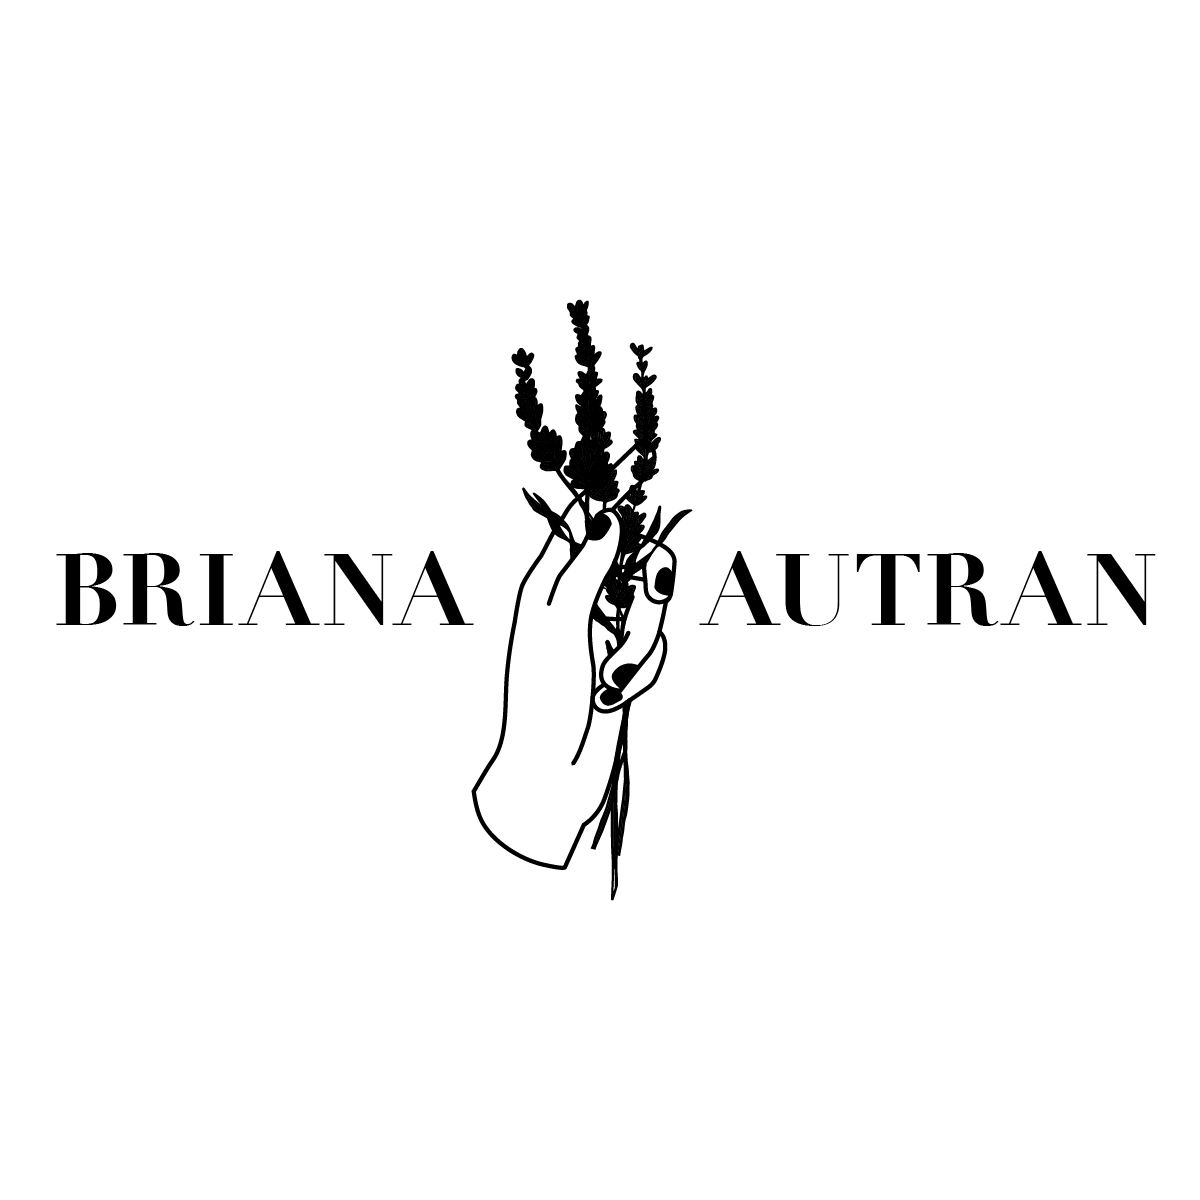 BRIANA AUTRAN PHOTOGRAPHY